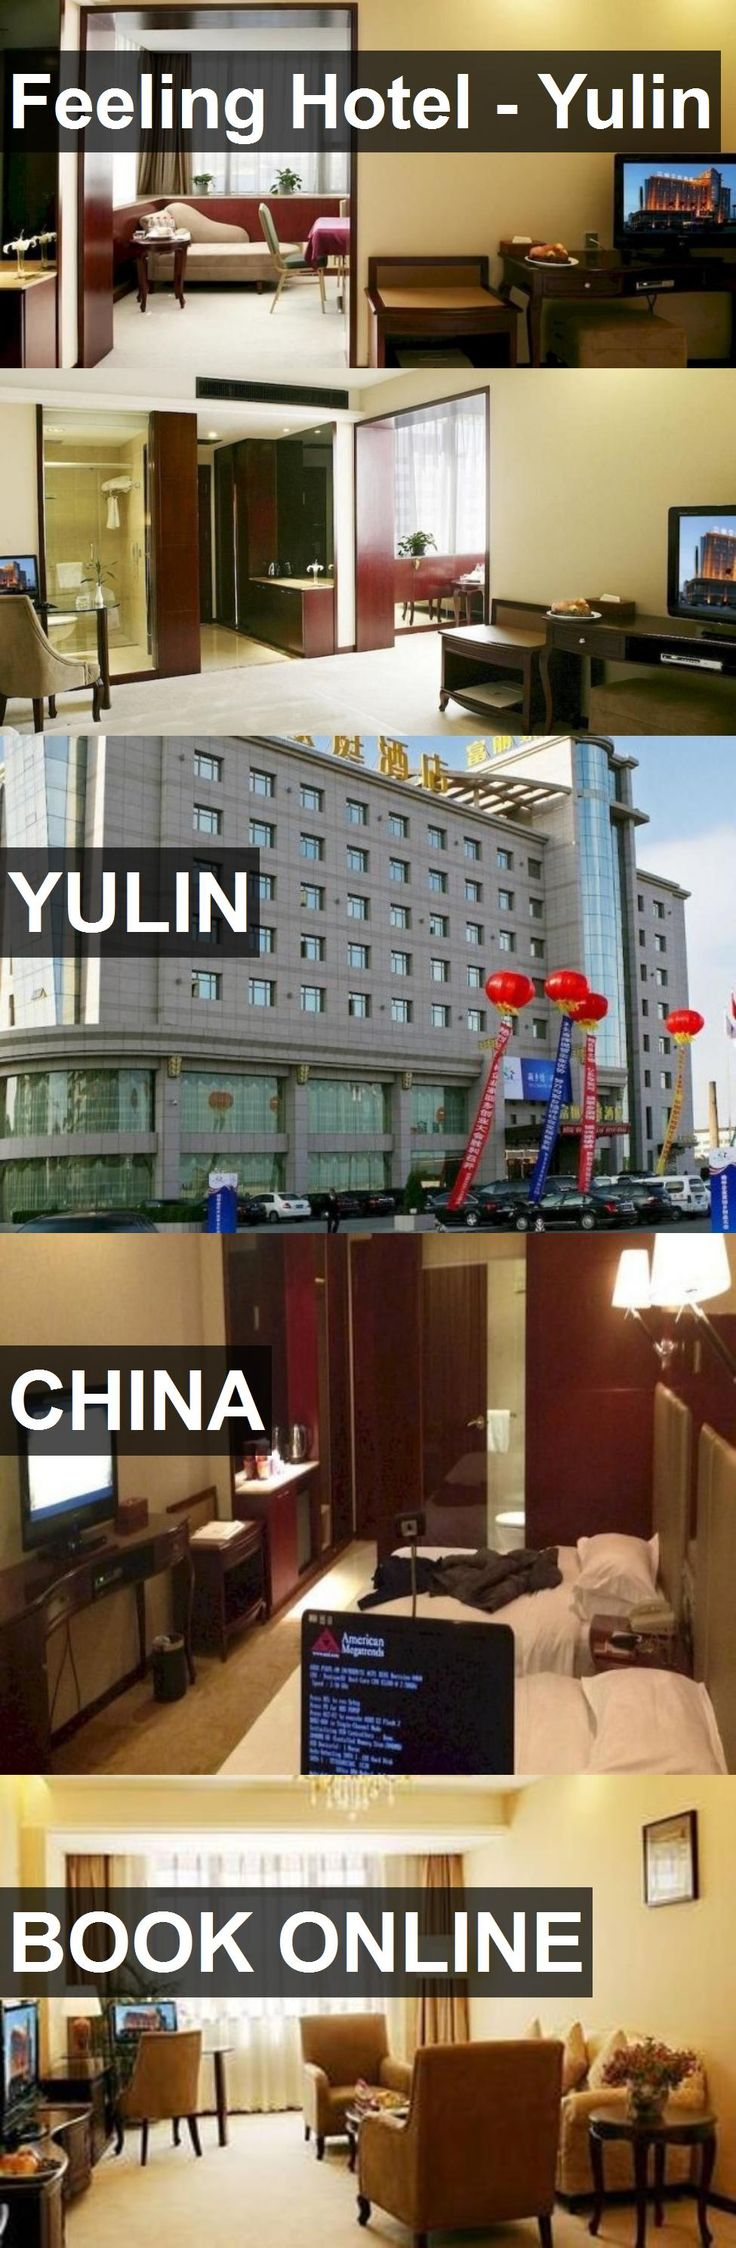 Feeling Hotel - Yulin in Yulin, China. For more information, photos, reviews and best prices please follow the link. #China #Yulin #travel #vacation #hotel